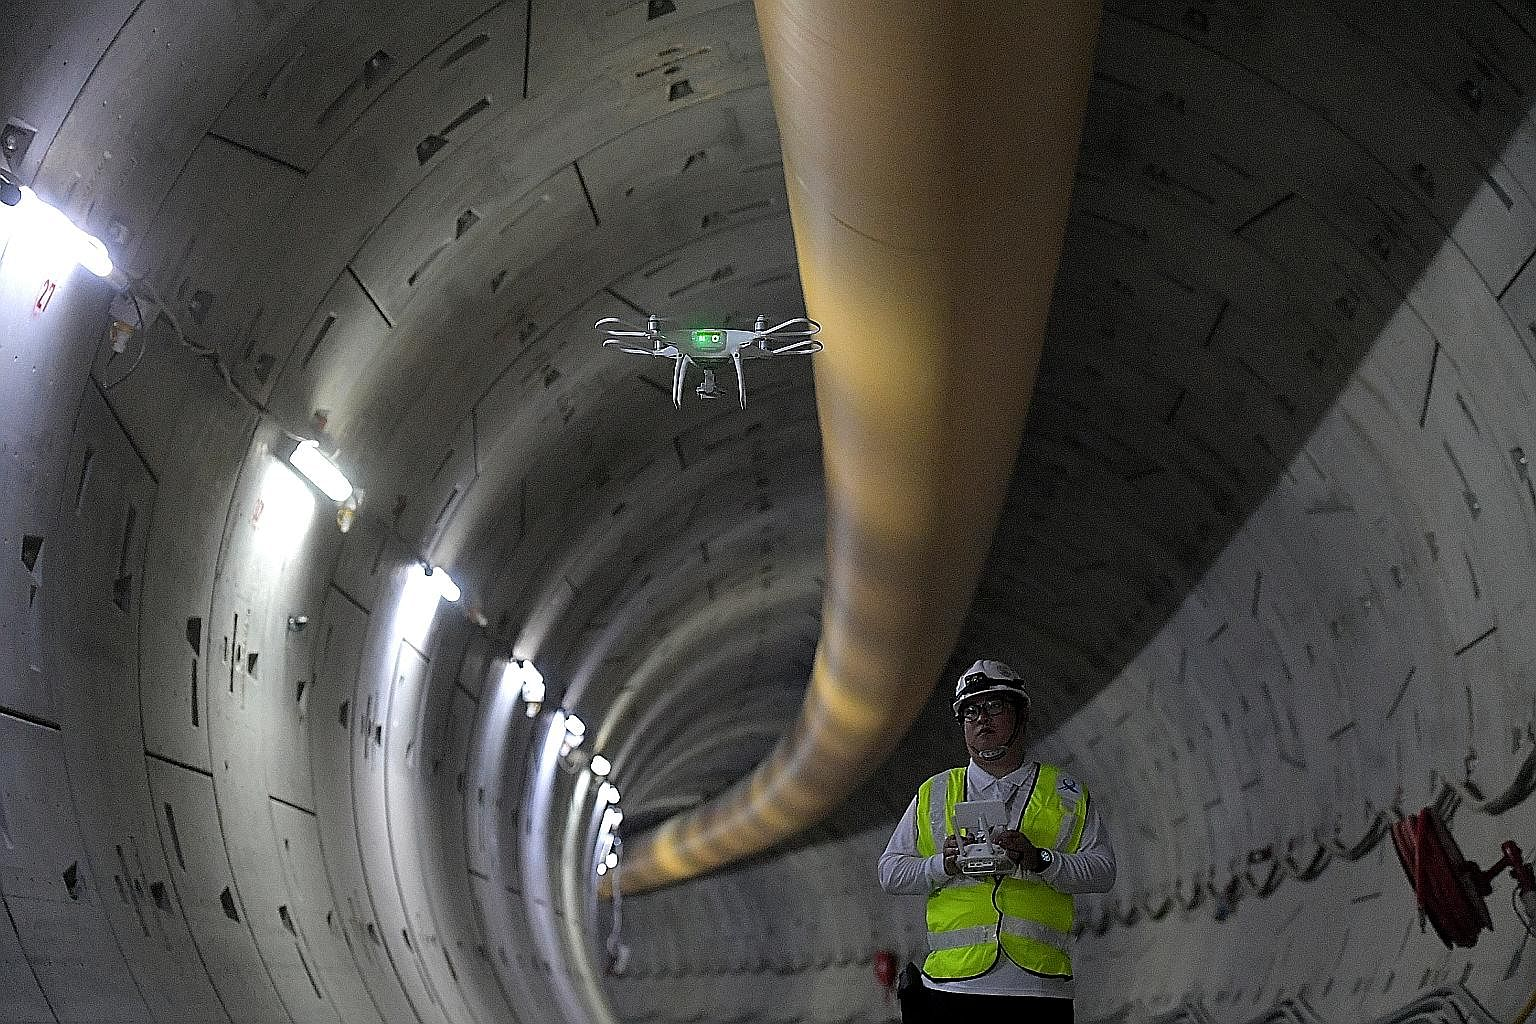 A drone used to inspect the tunnel of the Thomson-East Coast MRT Line. Drones are used by many g